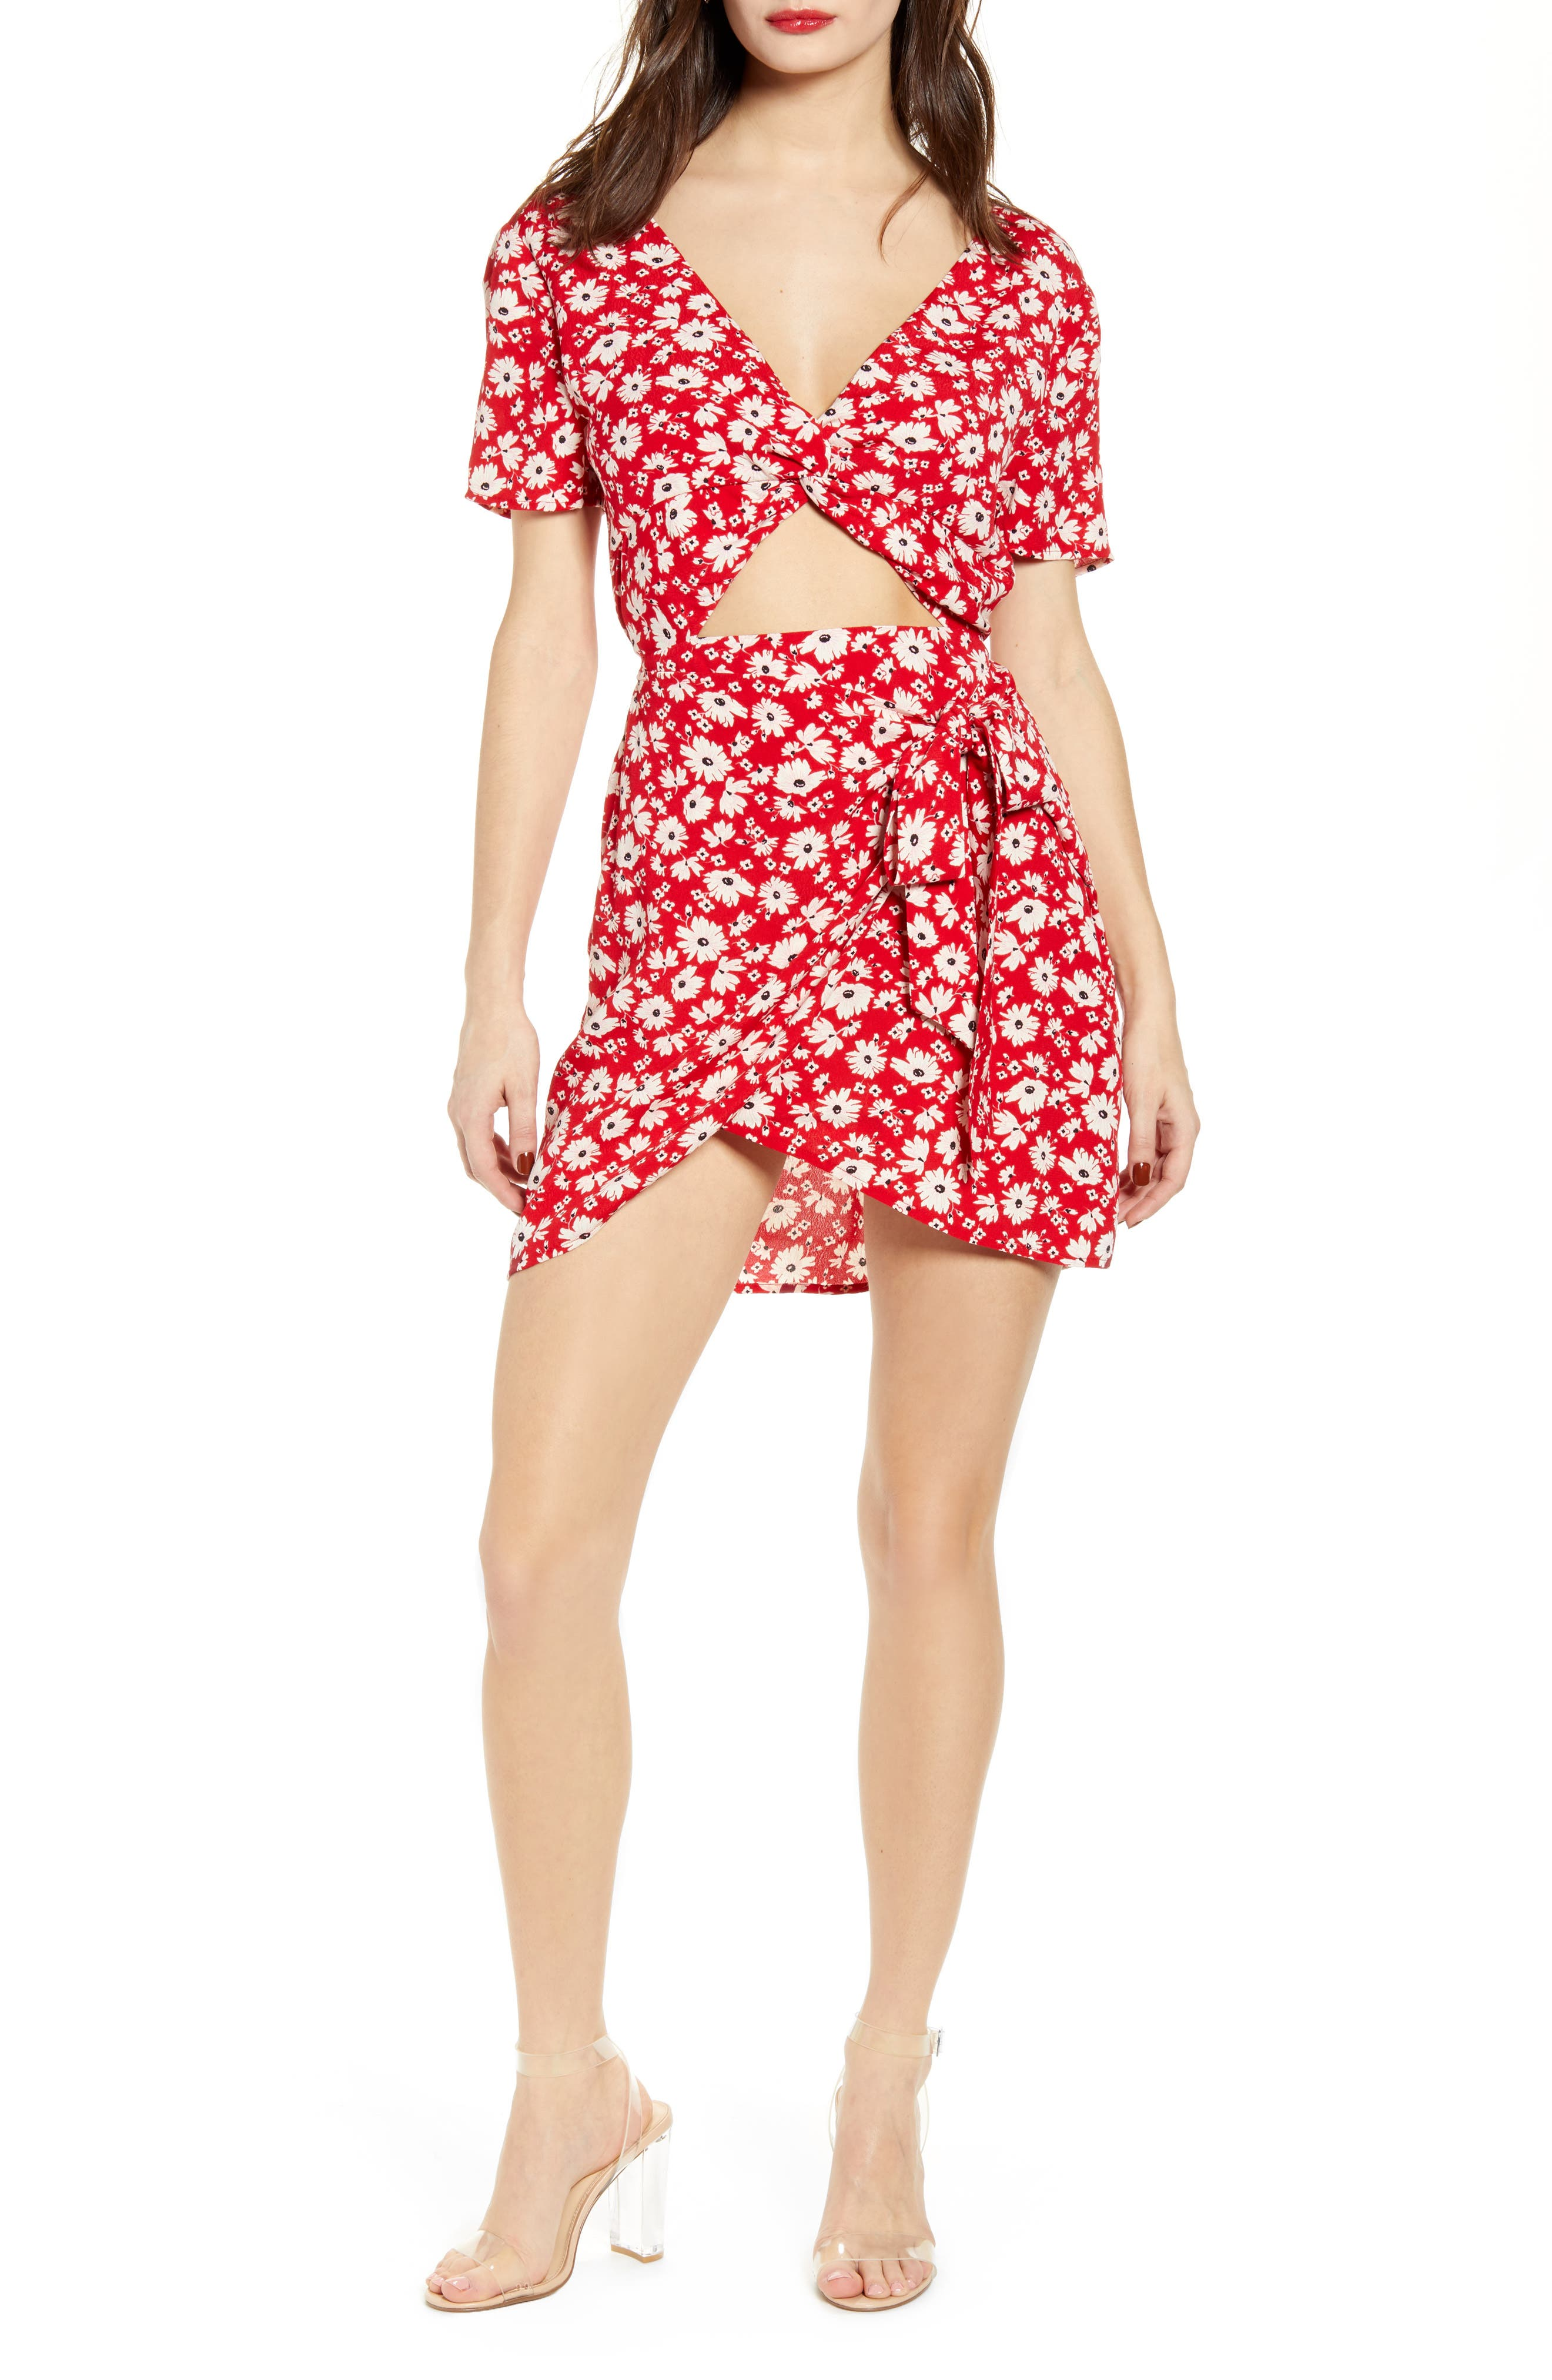 J.o.a. Front Twist Minidress, Red